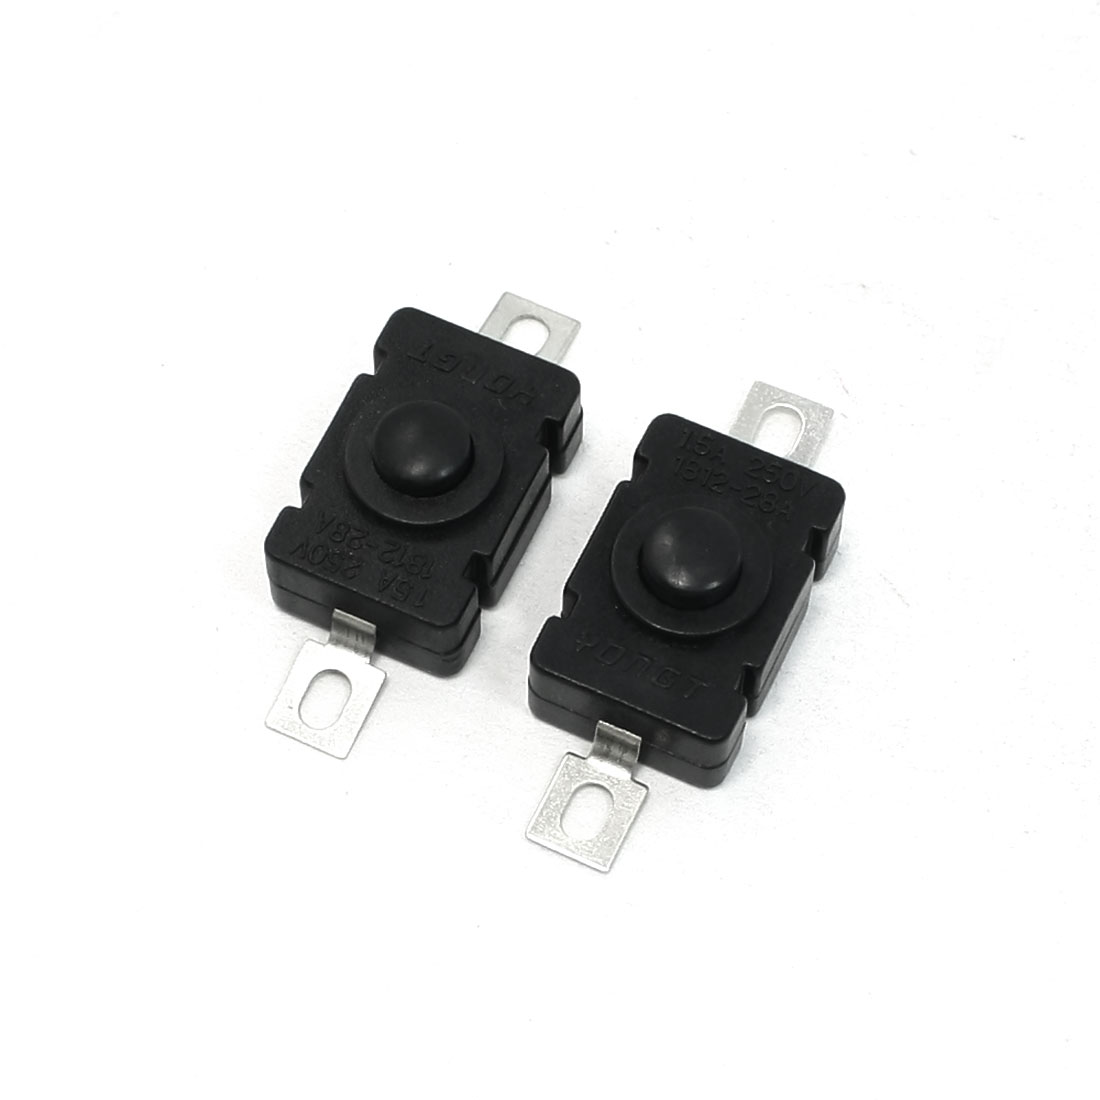 2 x Soldering Terminals Tactile Pushbutton Switch Black 17 x 11.5 x 10mm